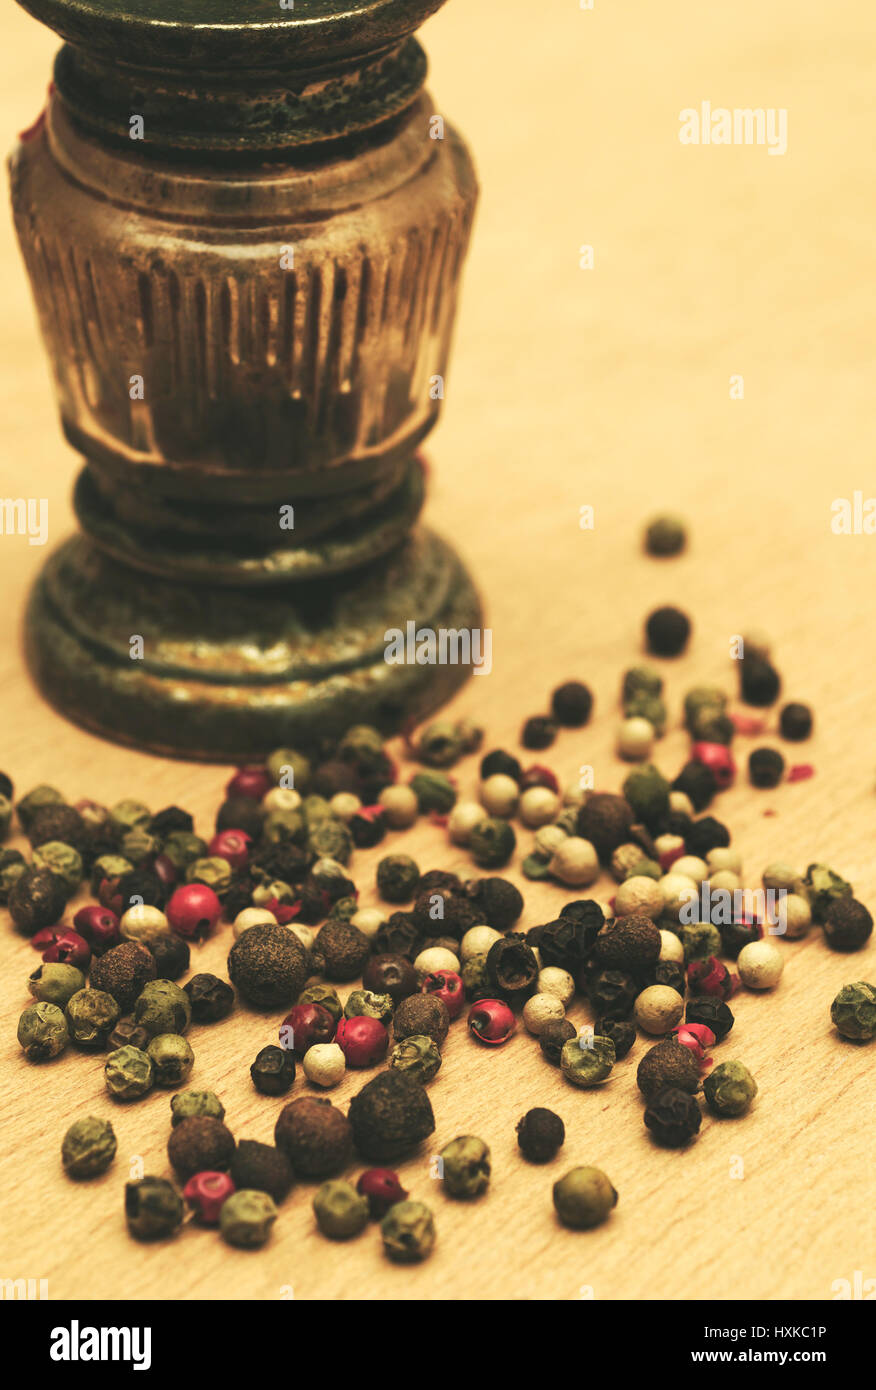 grinder and peppercorns - Stock Image